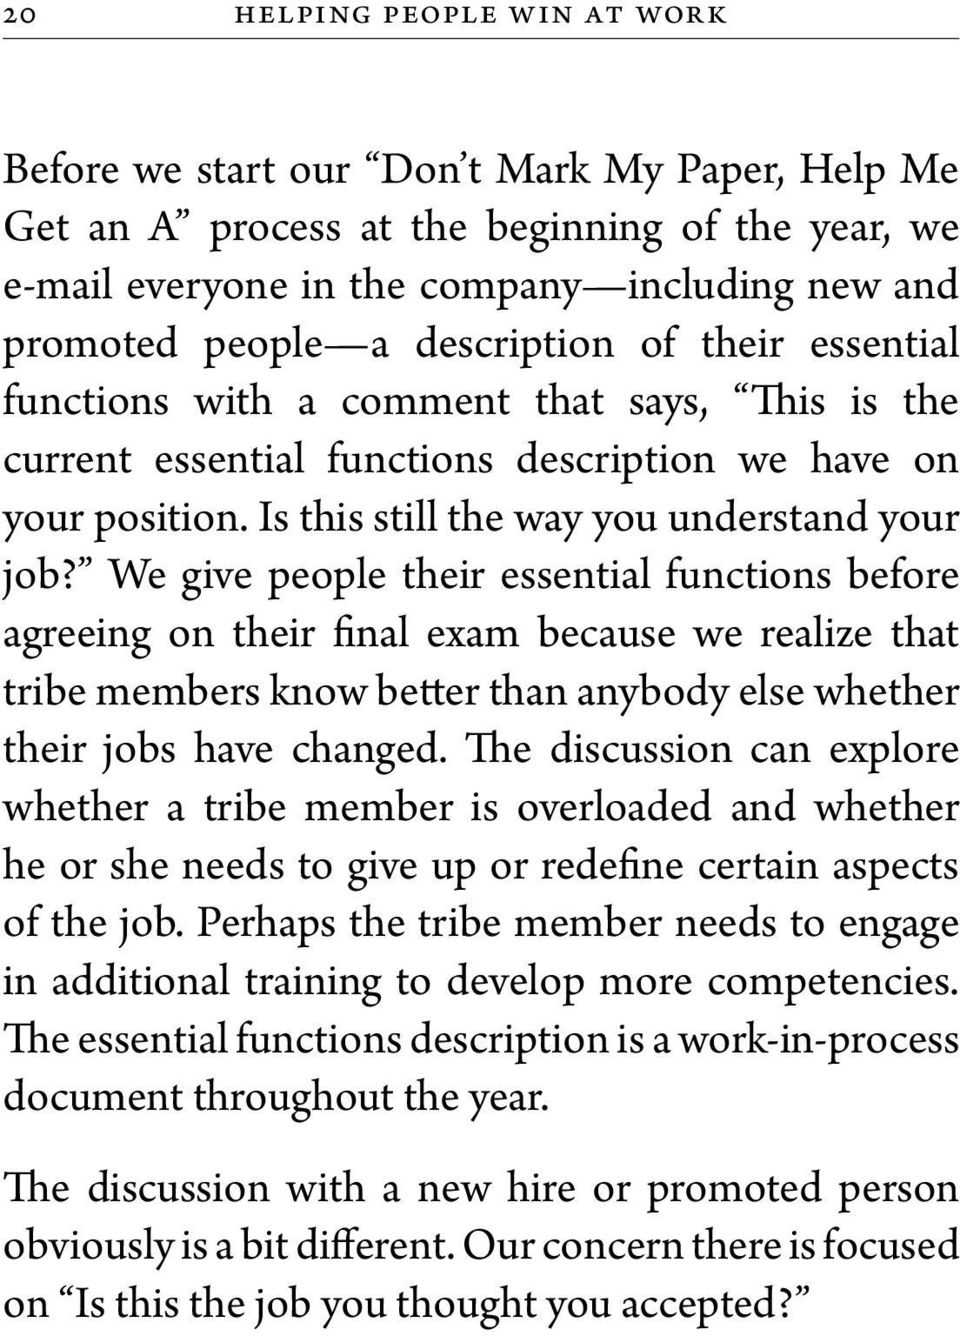 We give people their essential functions before agreeing on their final exam because we realize that tribe members know better than anybody else whether their jobs have changed.